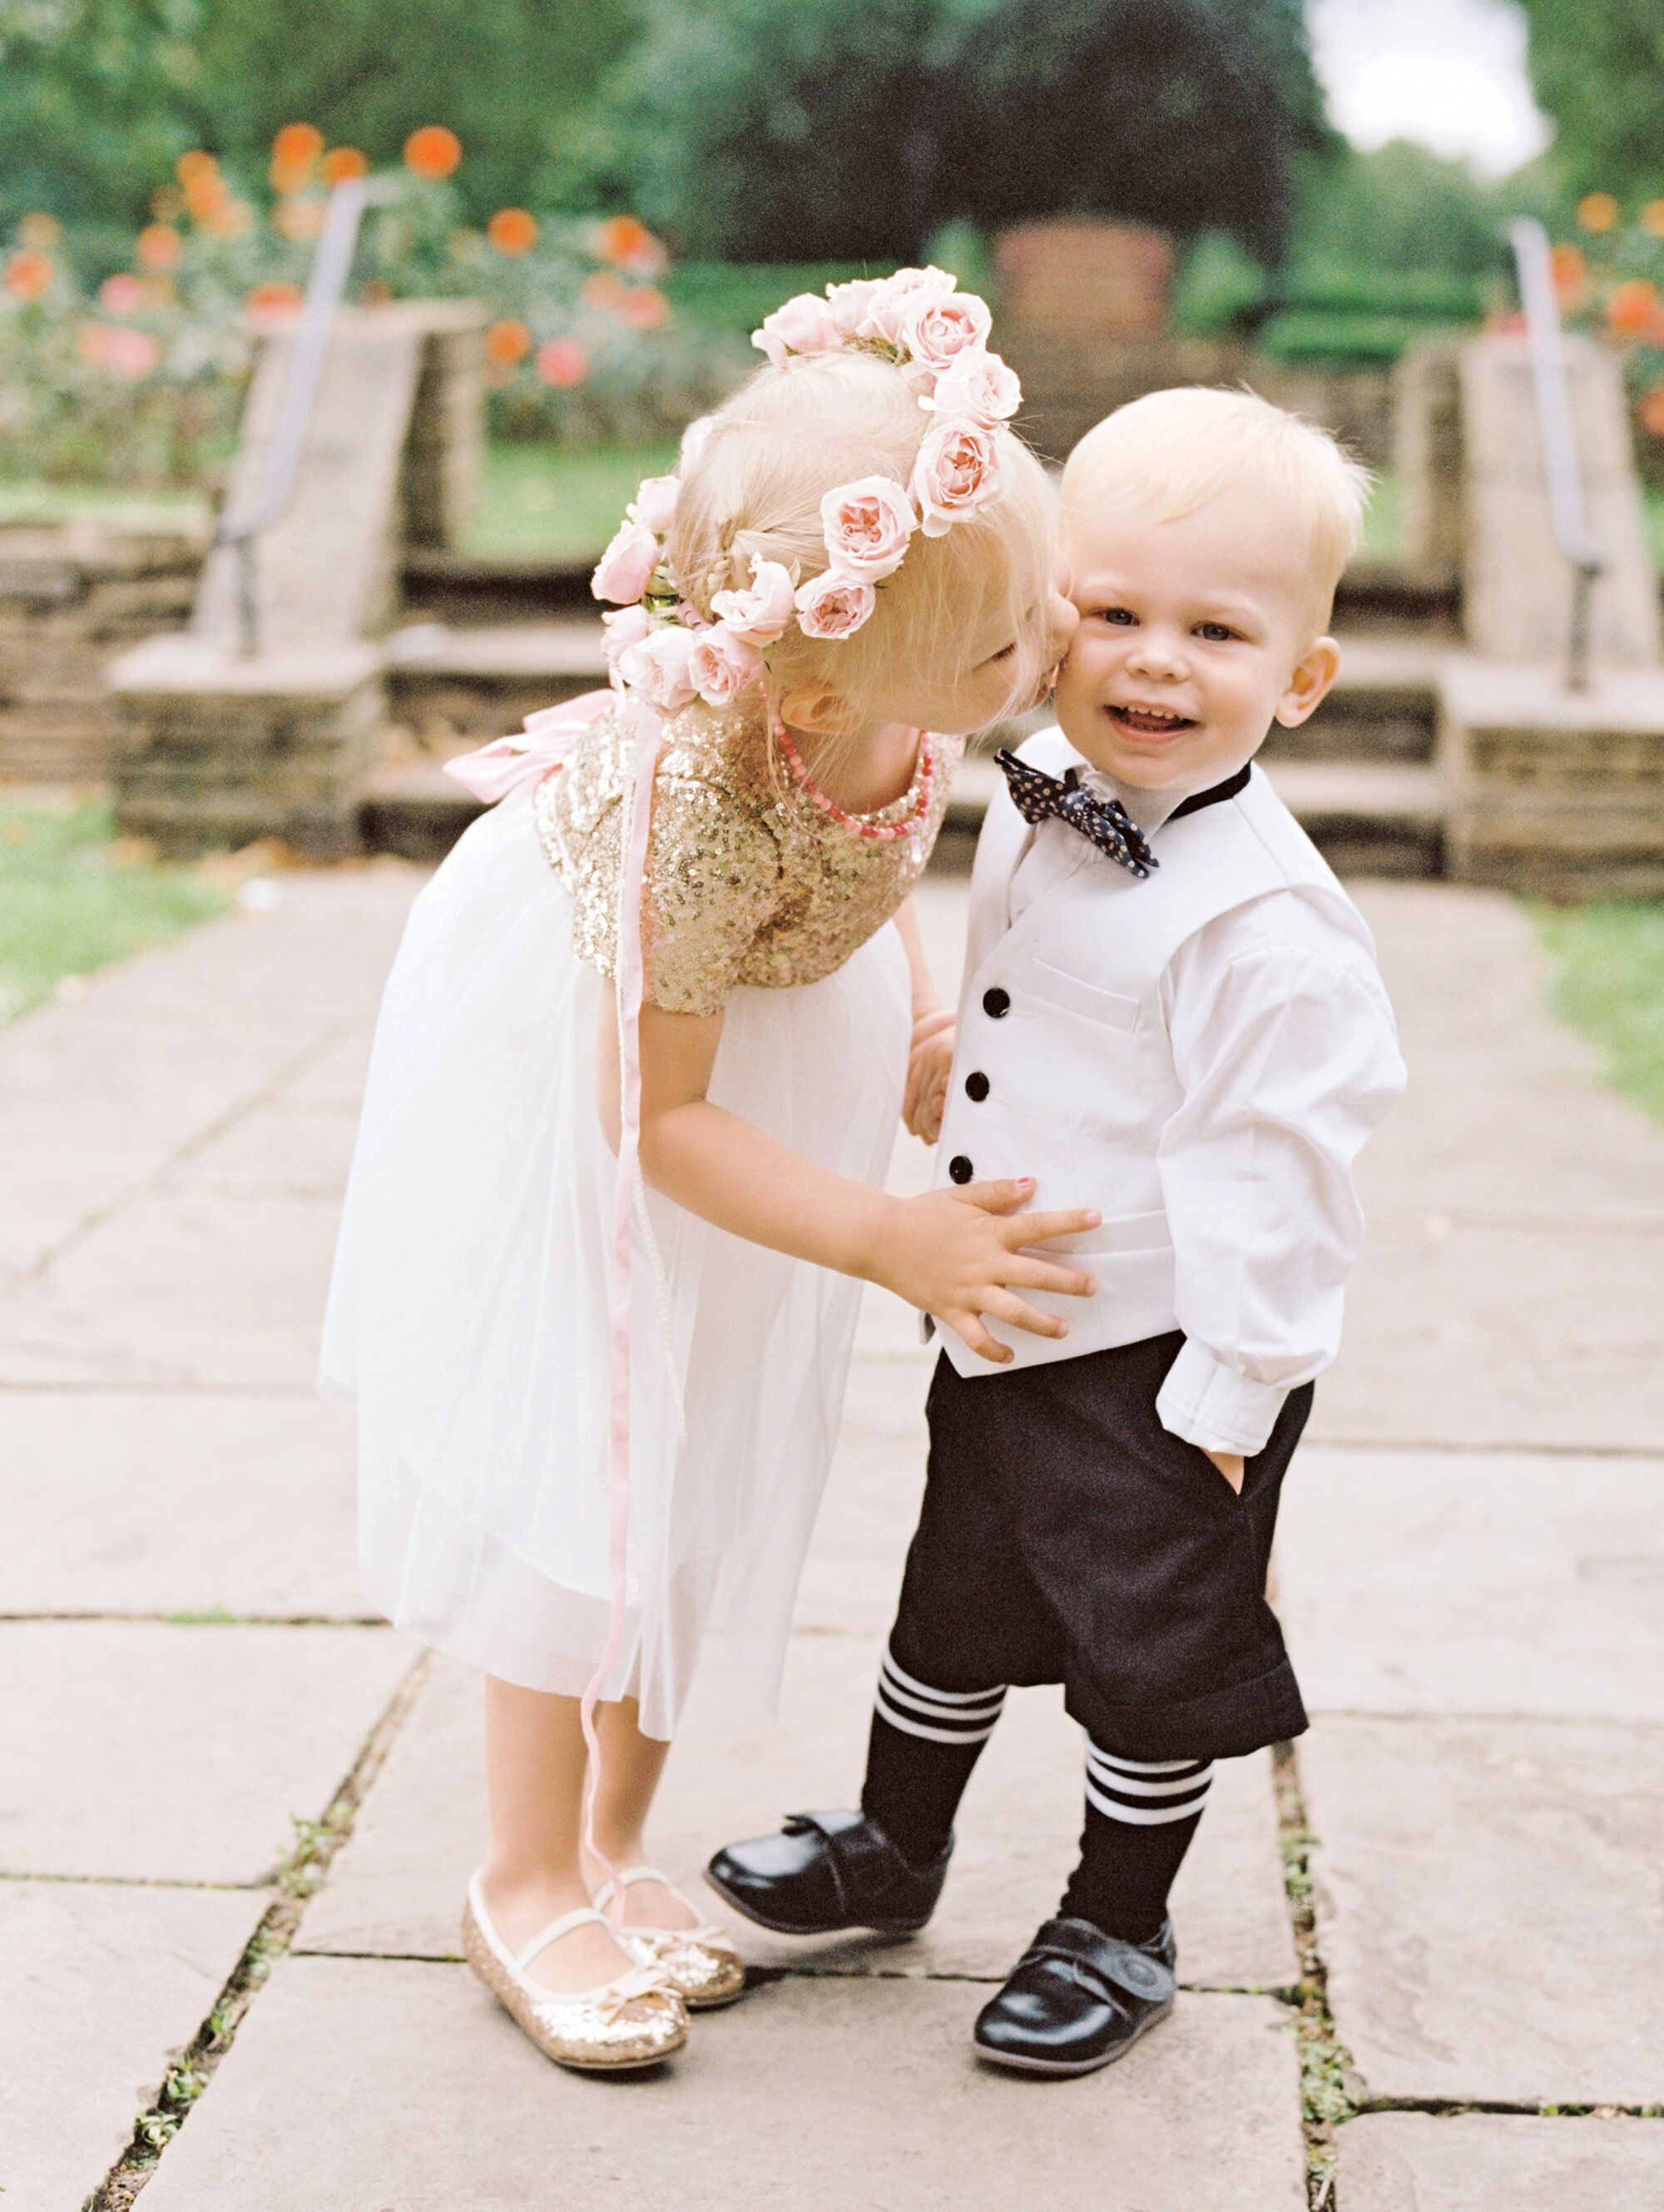 17 Of The Sweetest Flower Girls And Ring Bearers We Ve